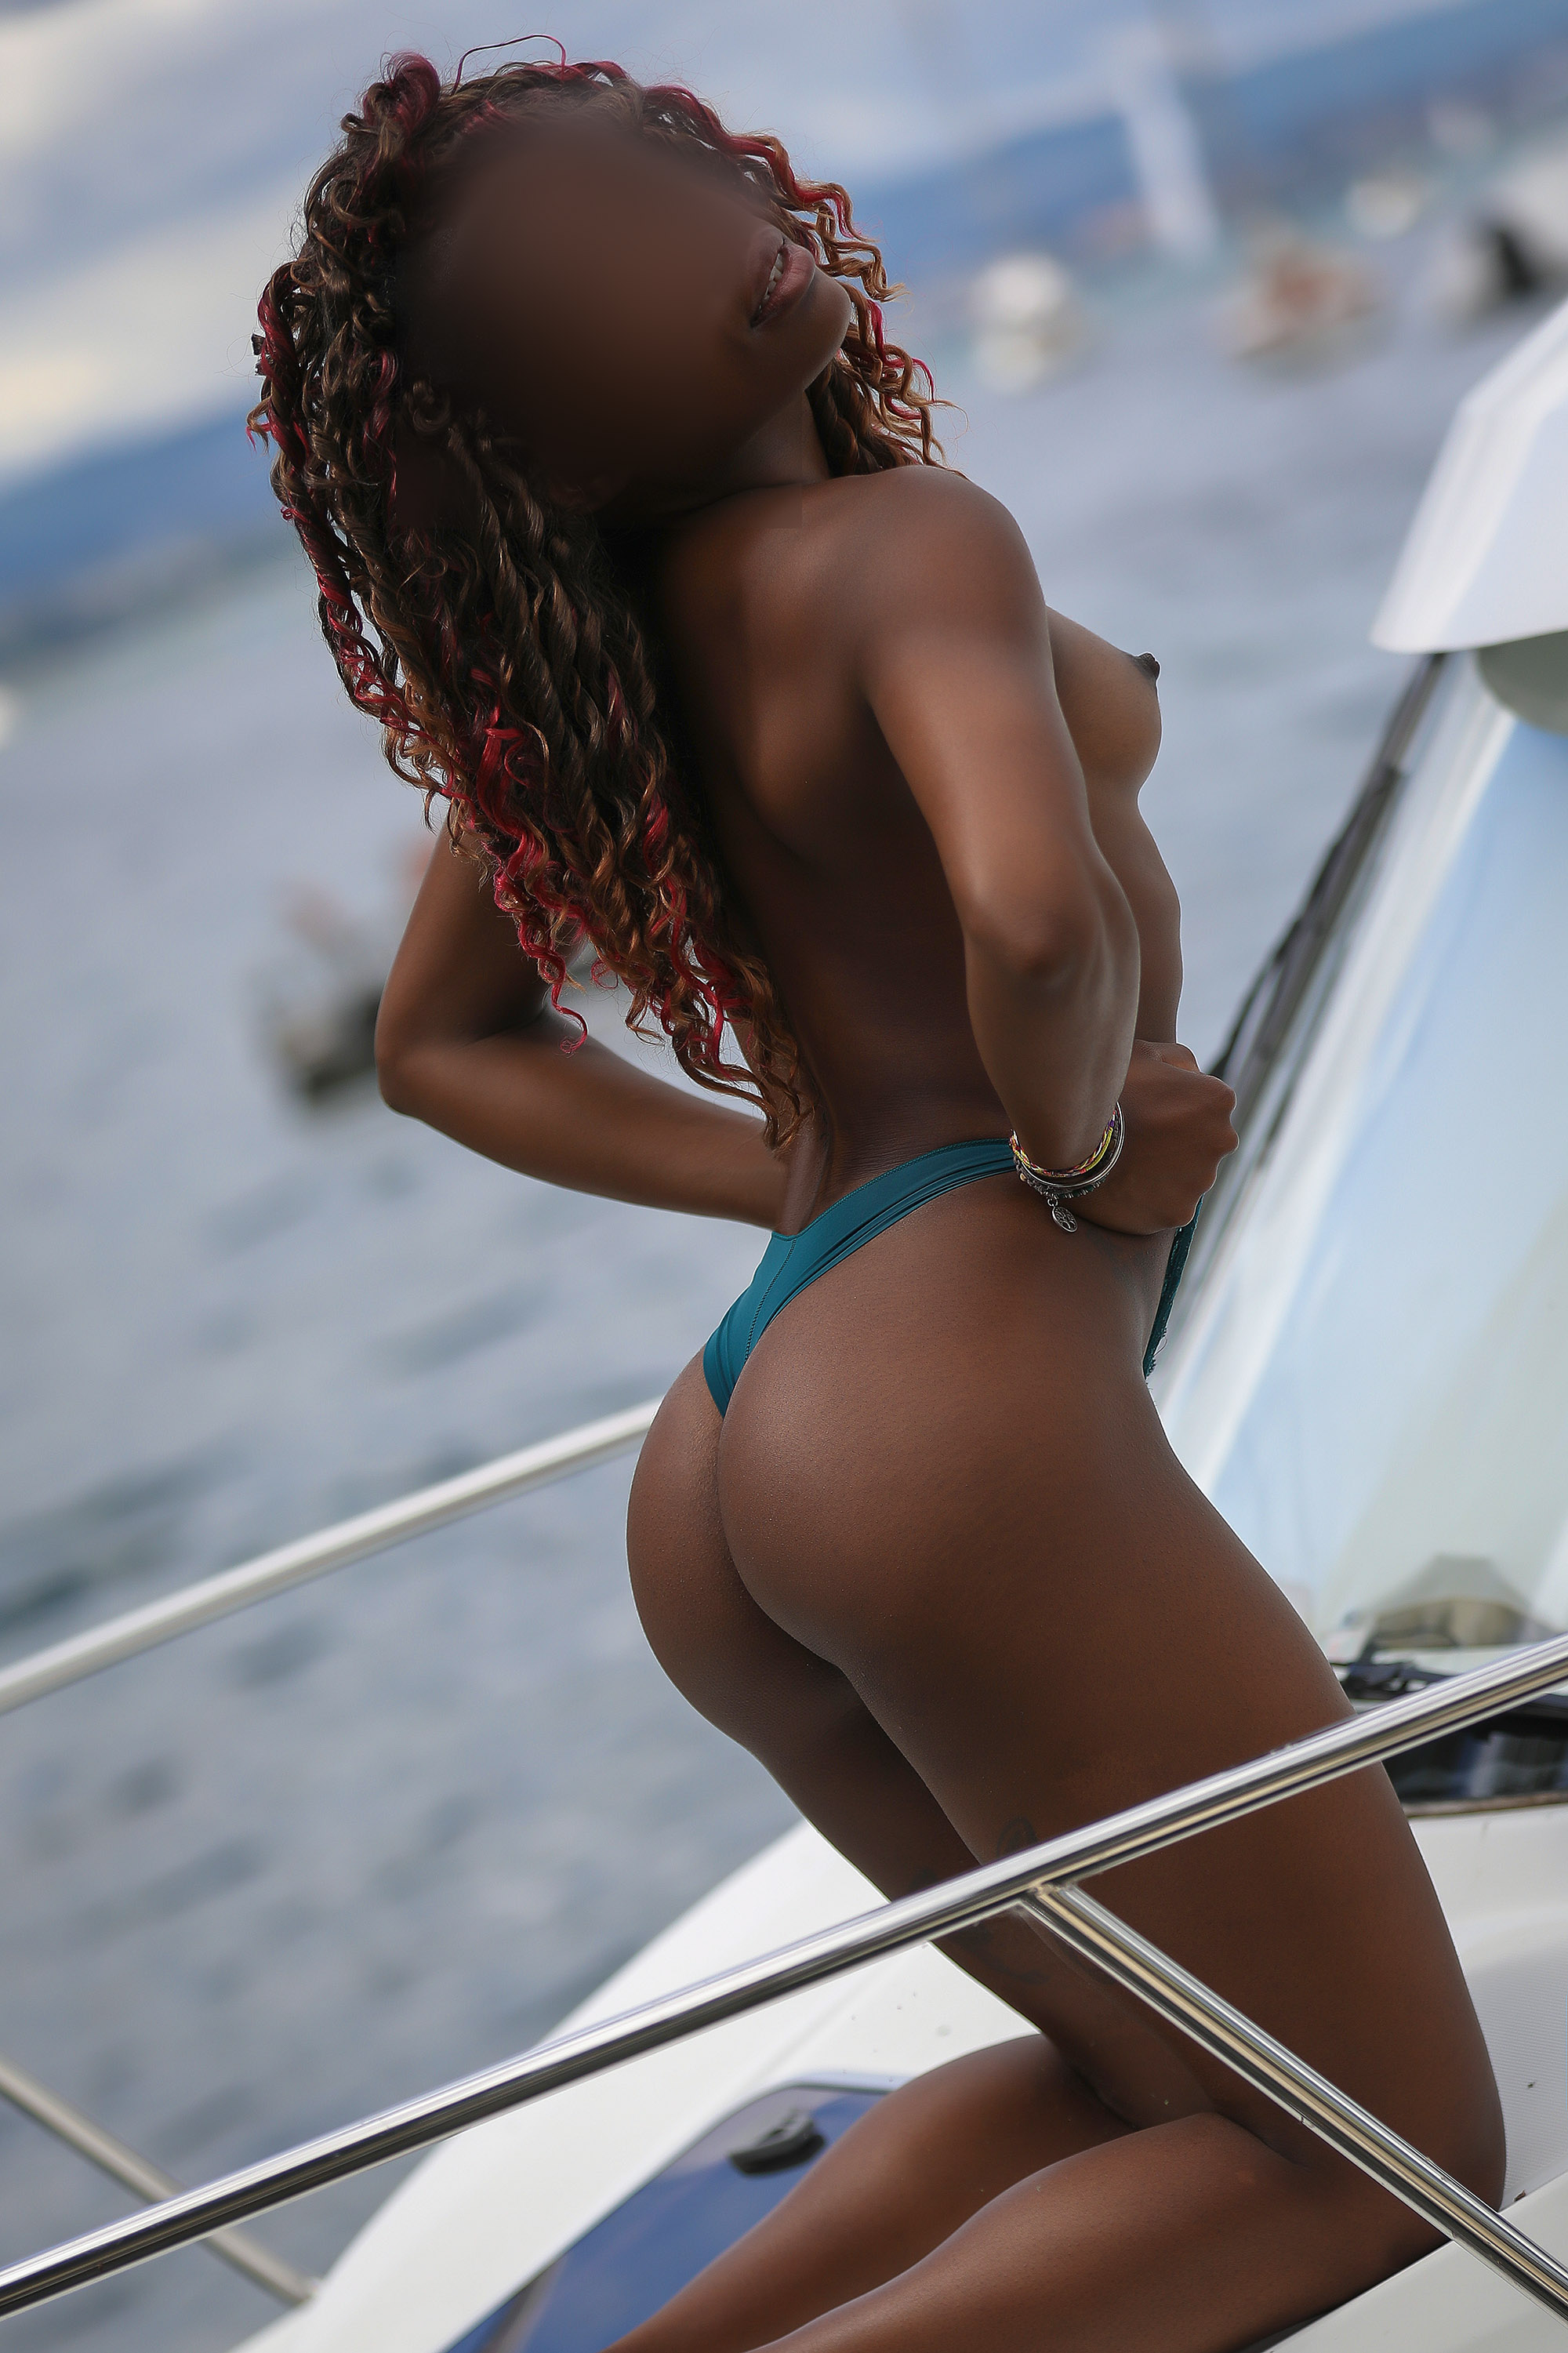 rose-escorte-black-girl-geneva-suisse-agency-london-geneve-agence.jpg